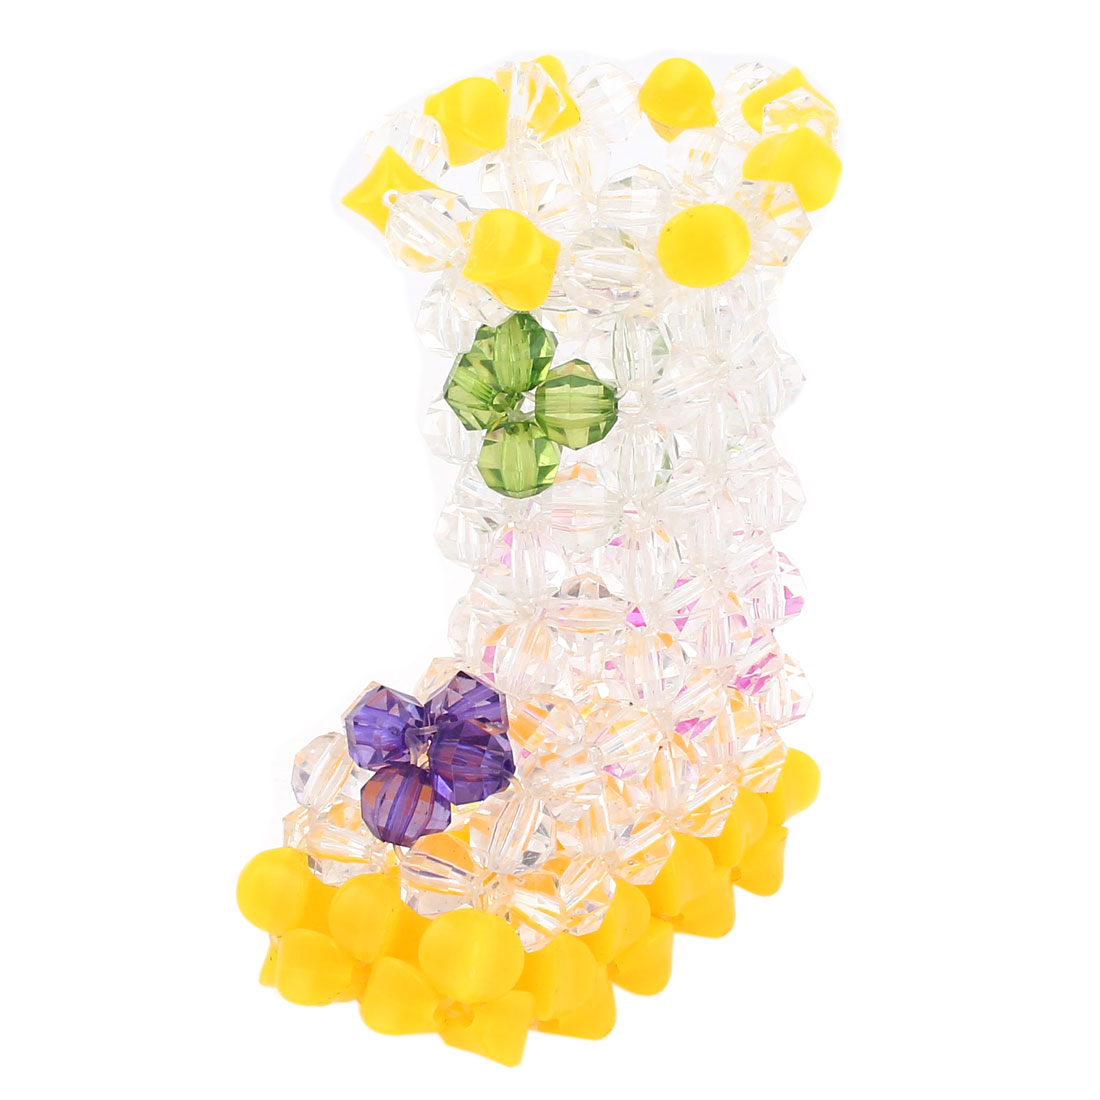 Yellow Clear Boot Shaped Handcraft Plastic Crystal Beads Vase Craft Room Decoration 4.7""